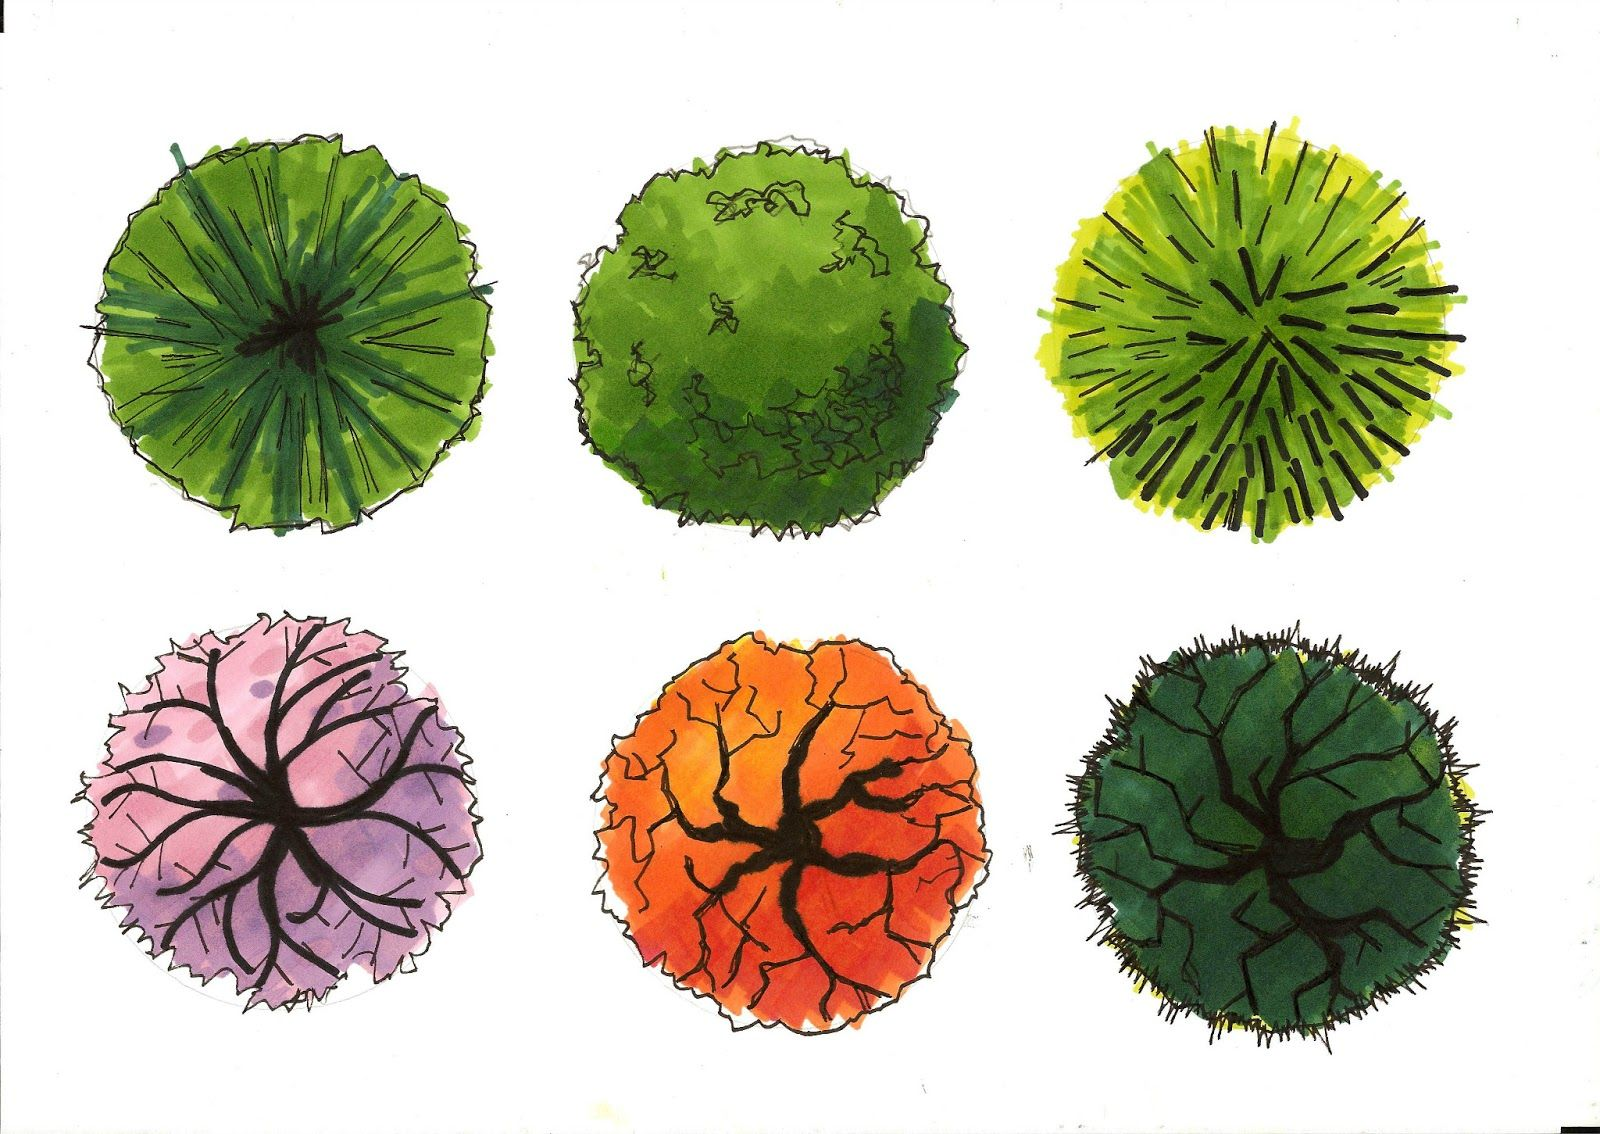 Garden Plans Watercolor Trees Top View Easy To Use In Your